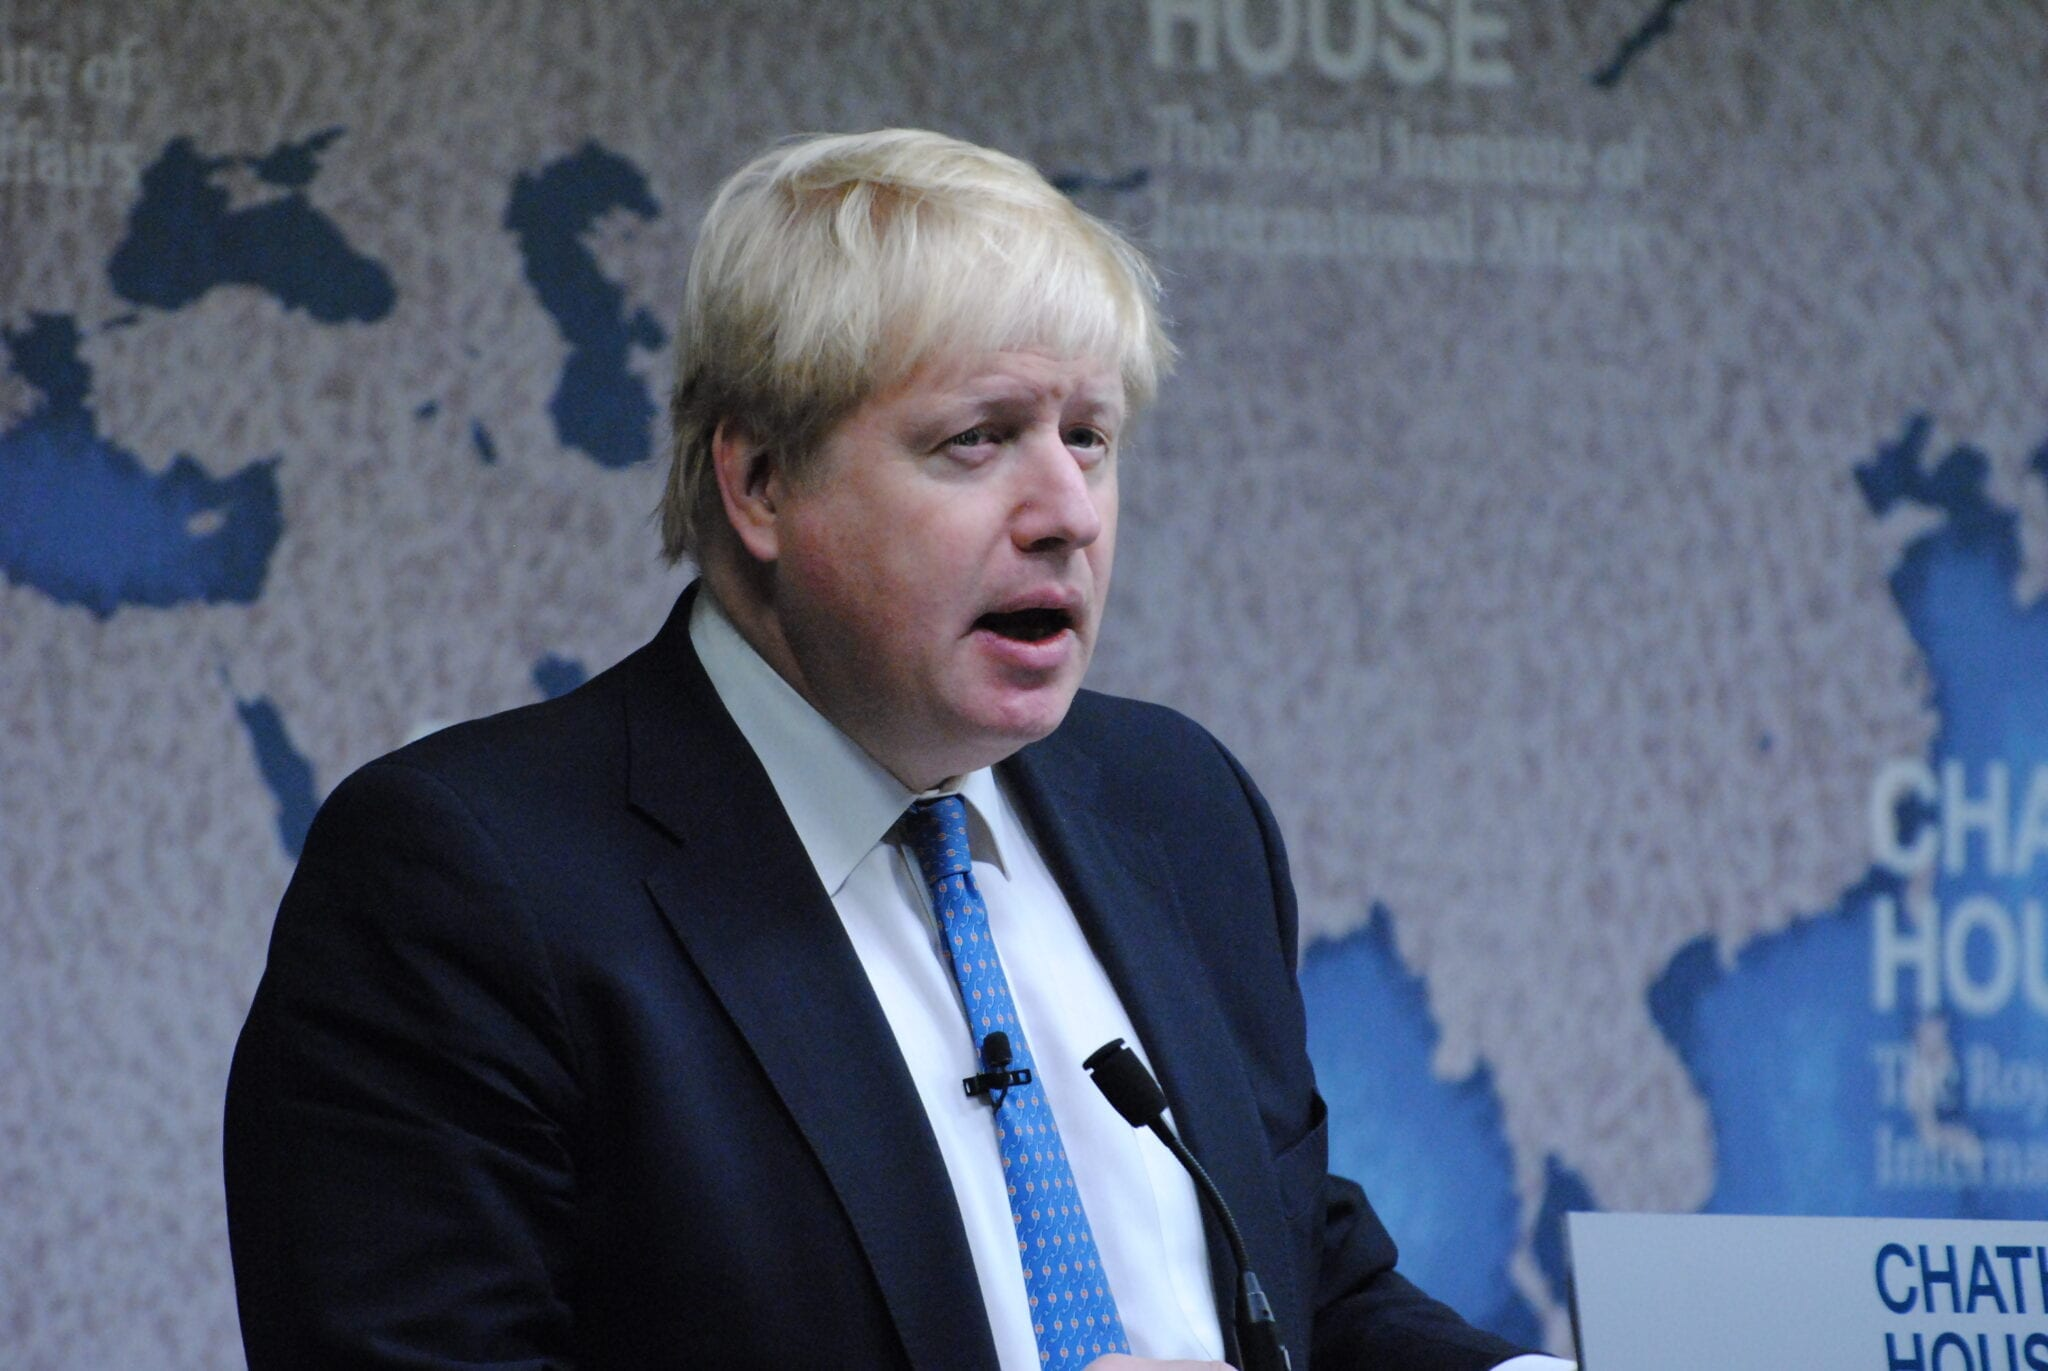 Bigotry, Austerity and Charlatanism: Who Is Boris Johnson?